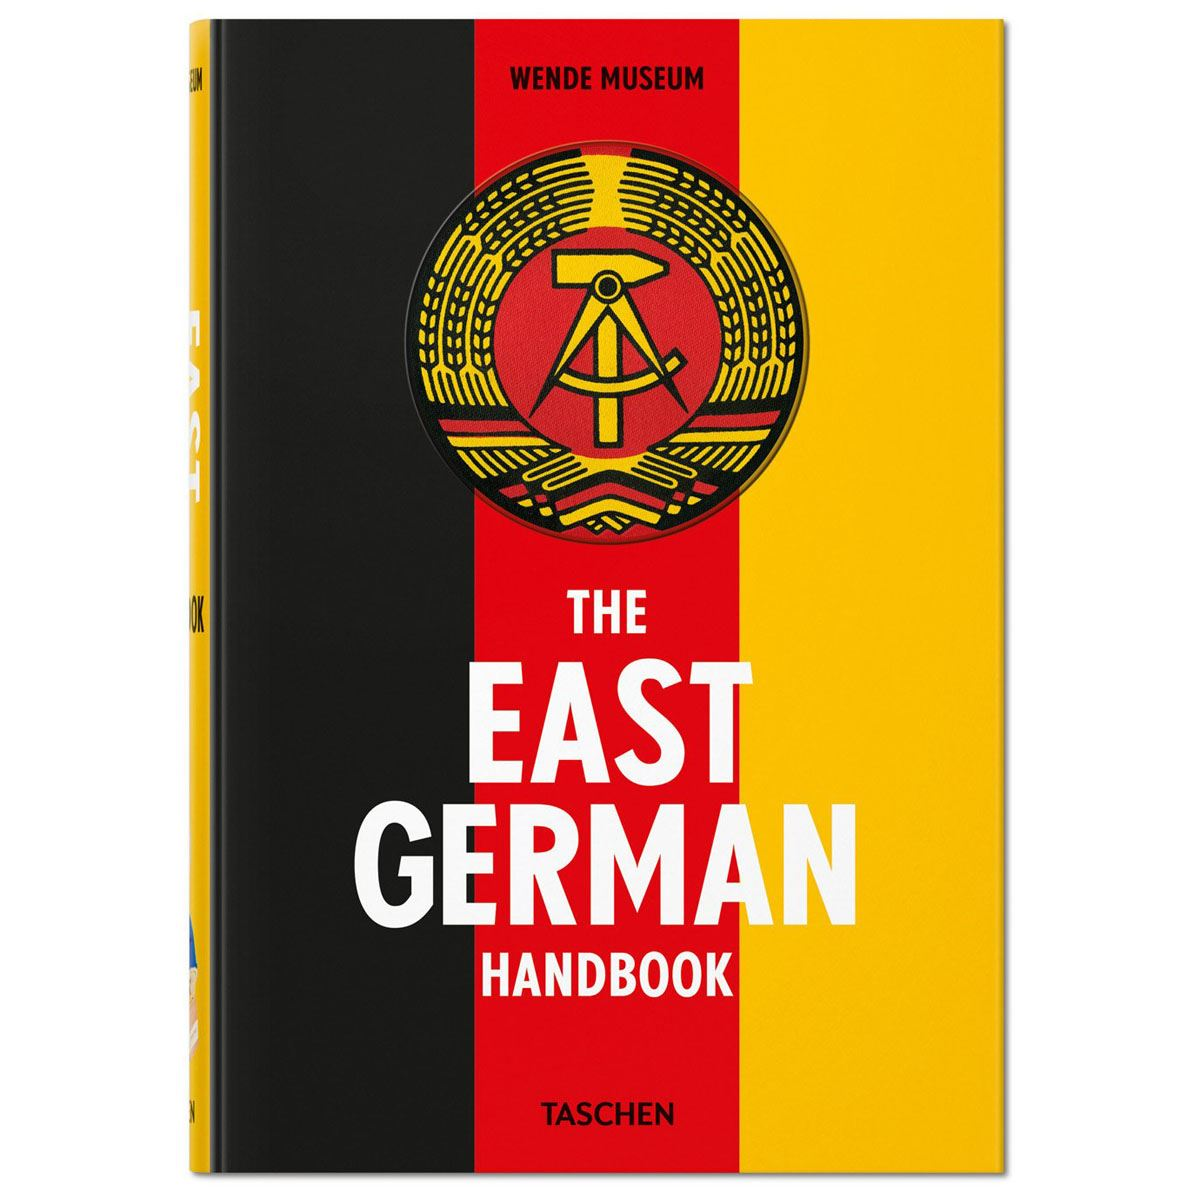 The east German